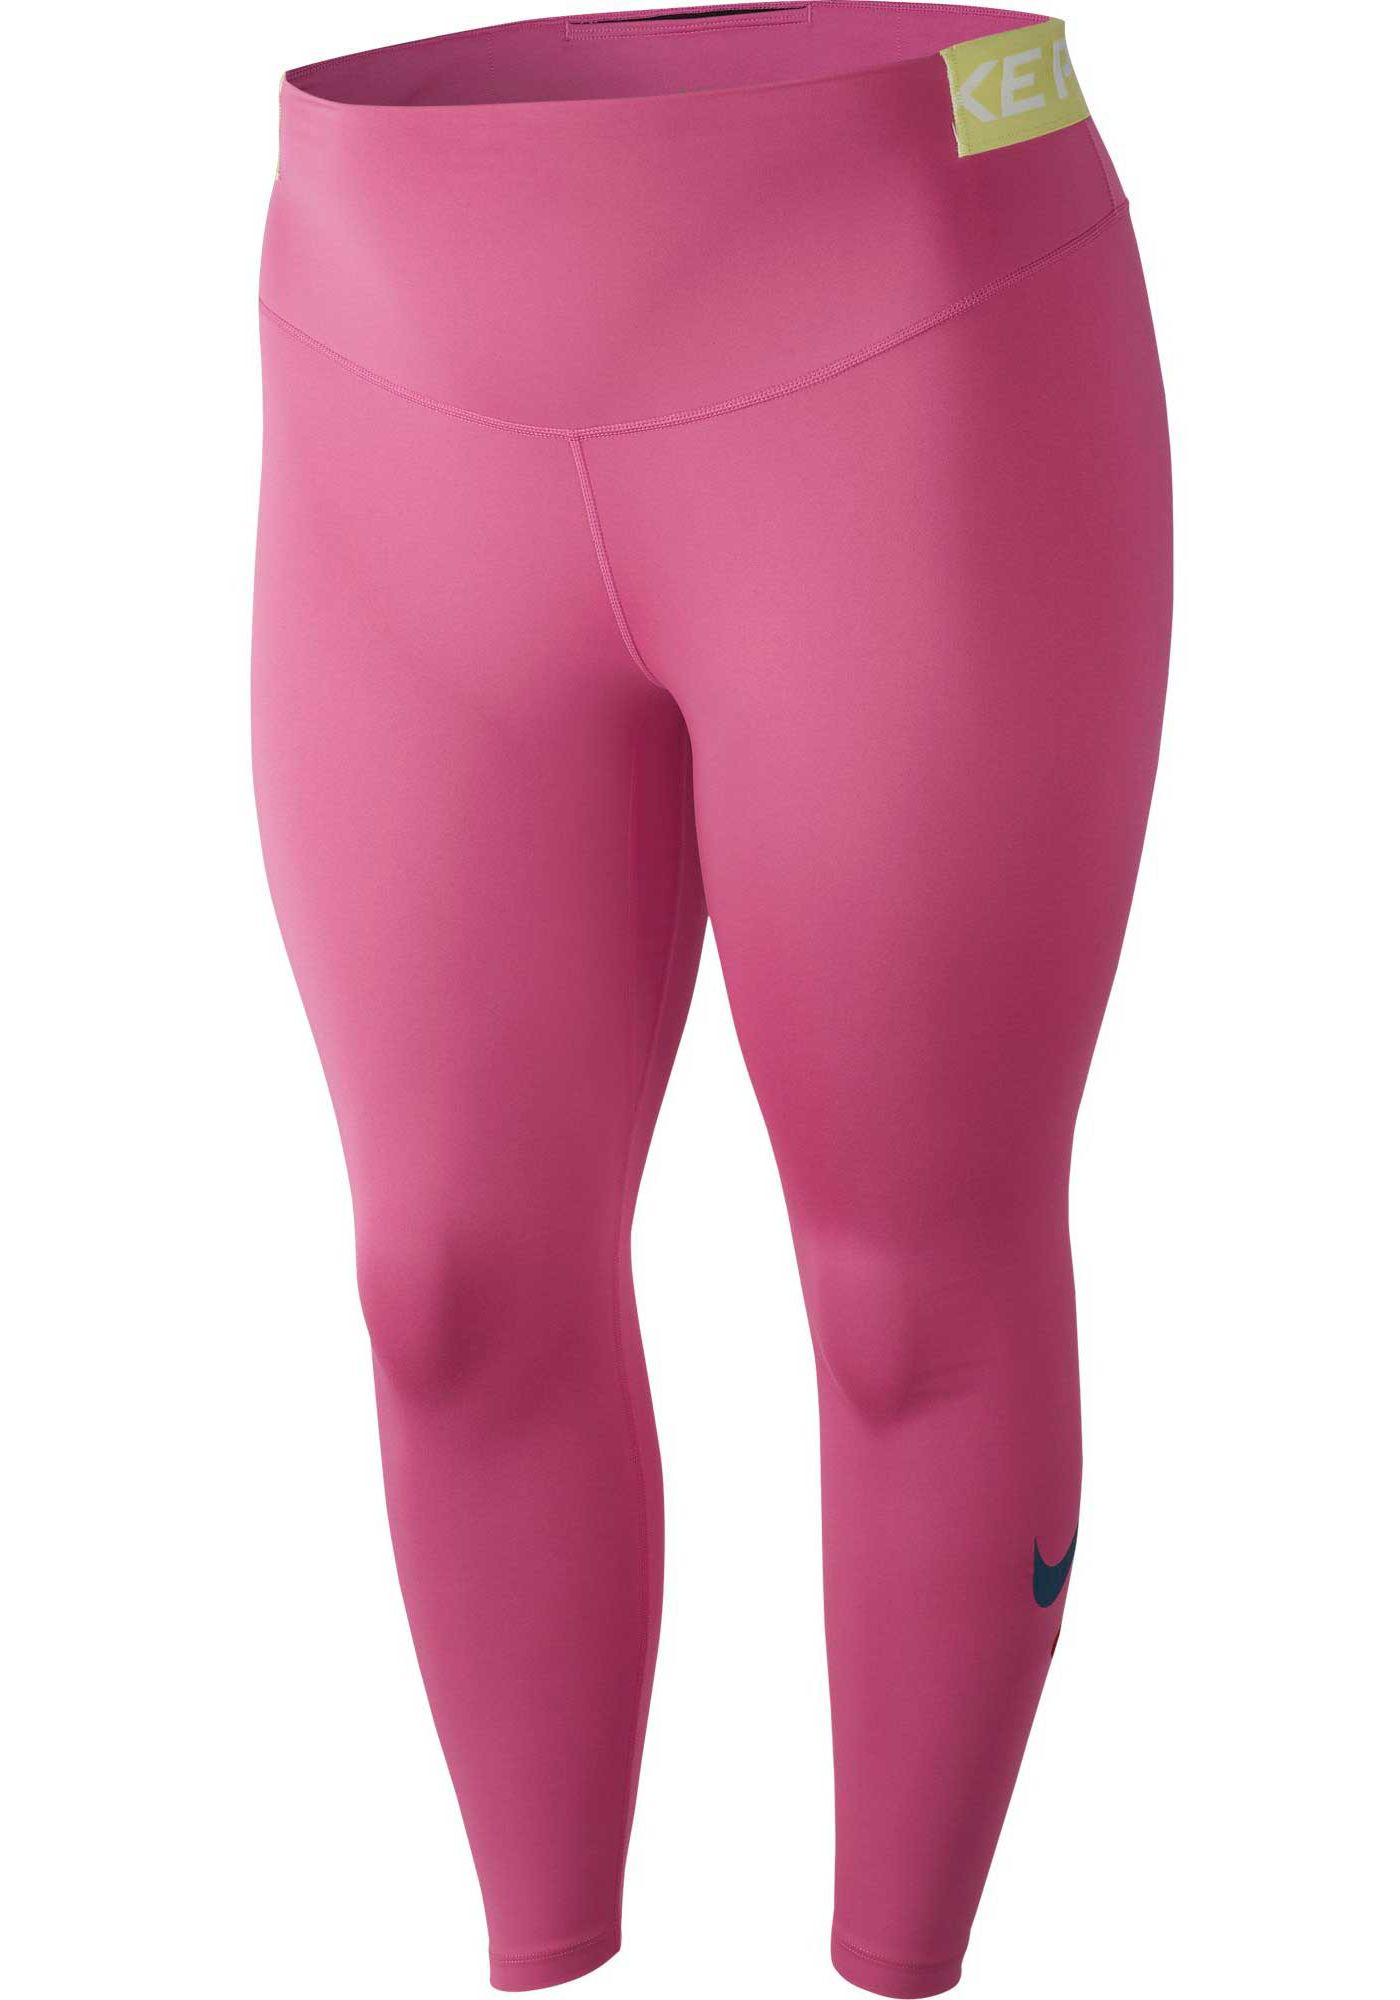 Nike One Women's Plus Size Just Do It Tights